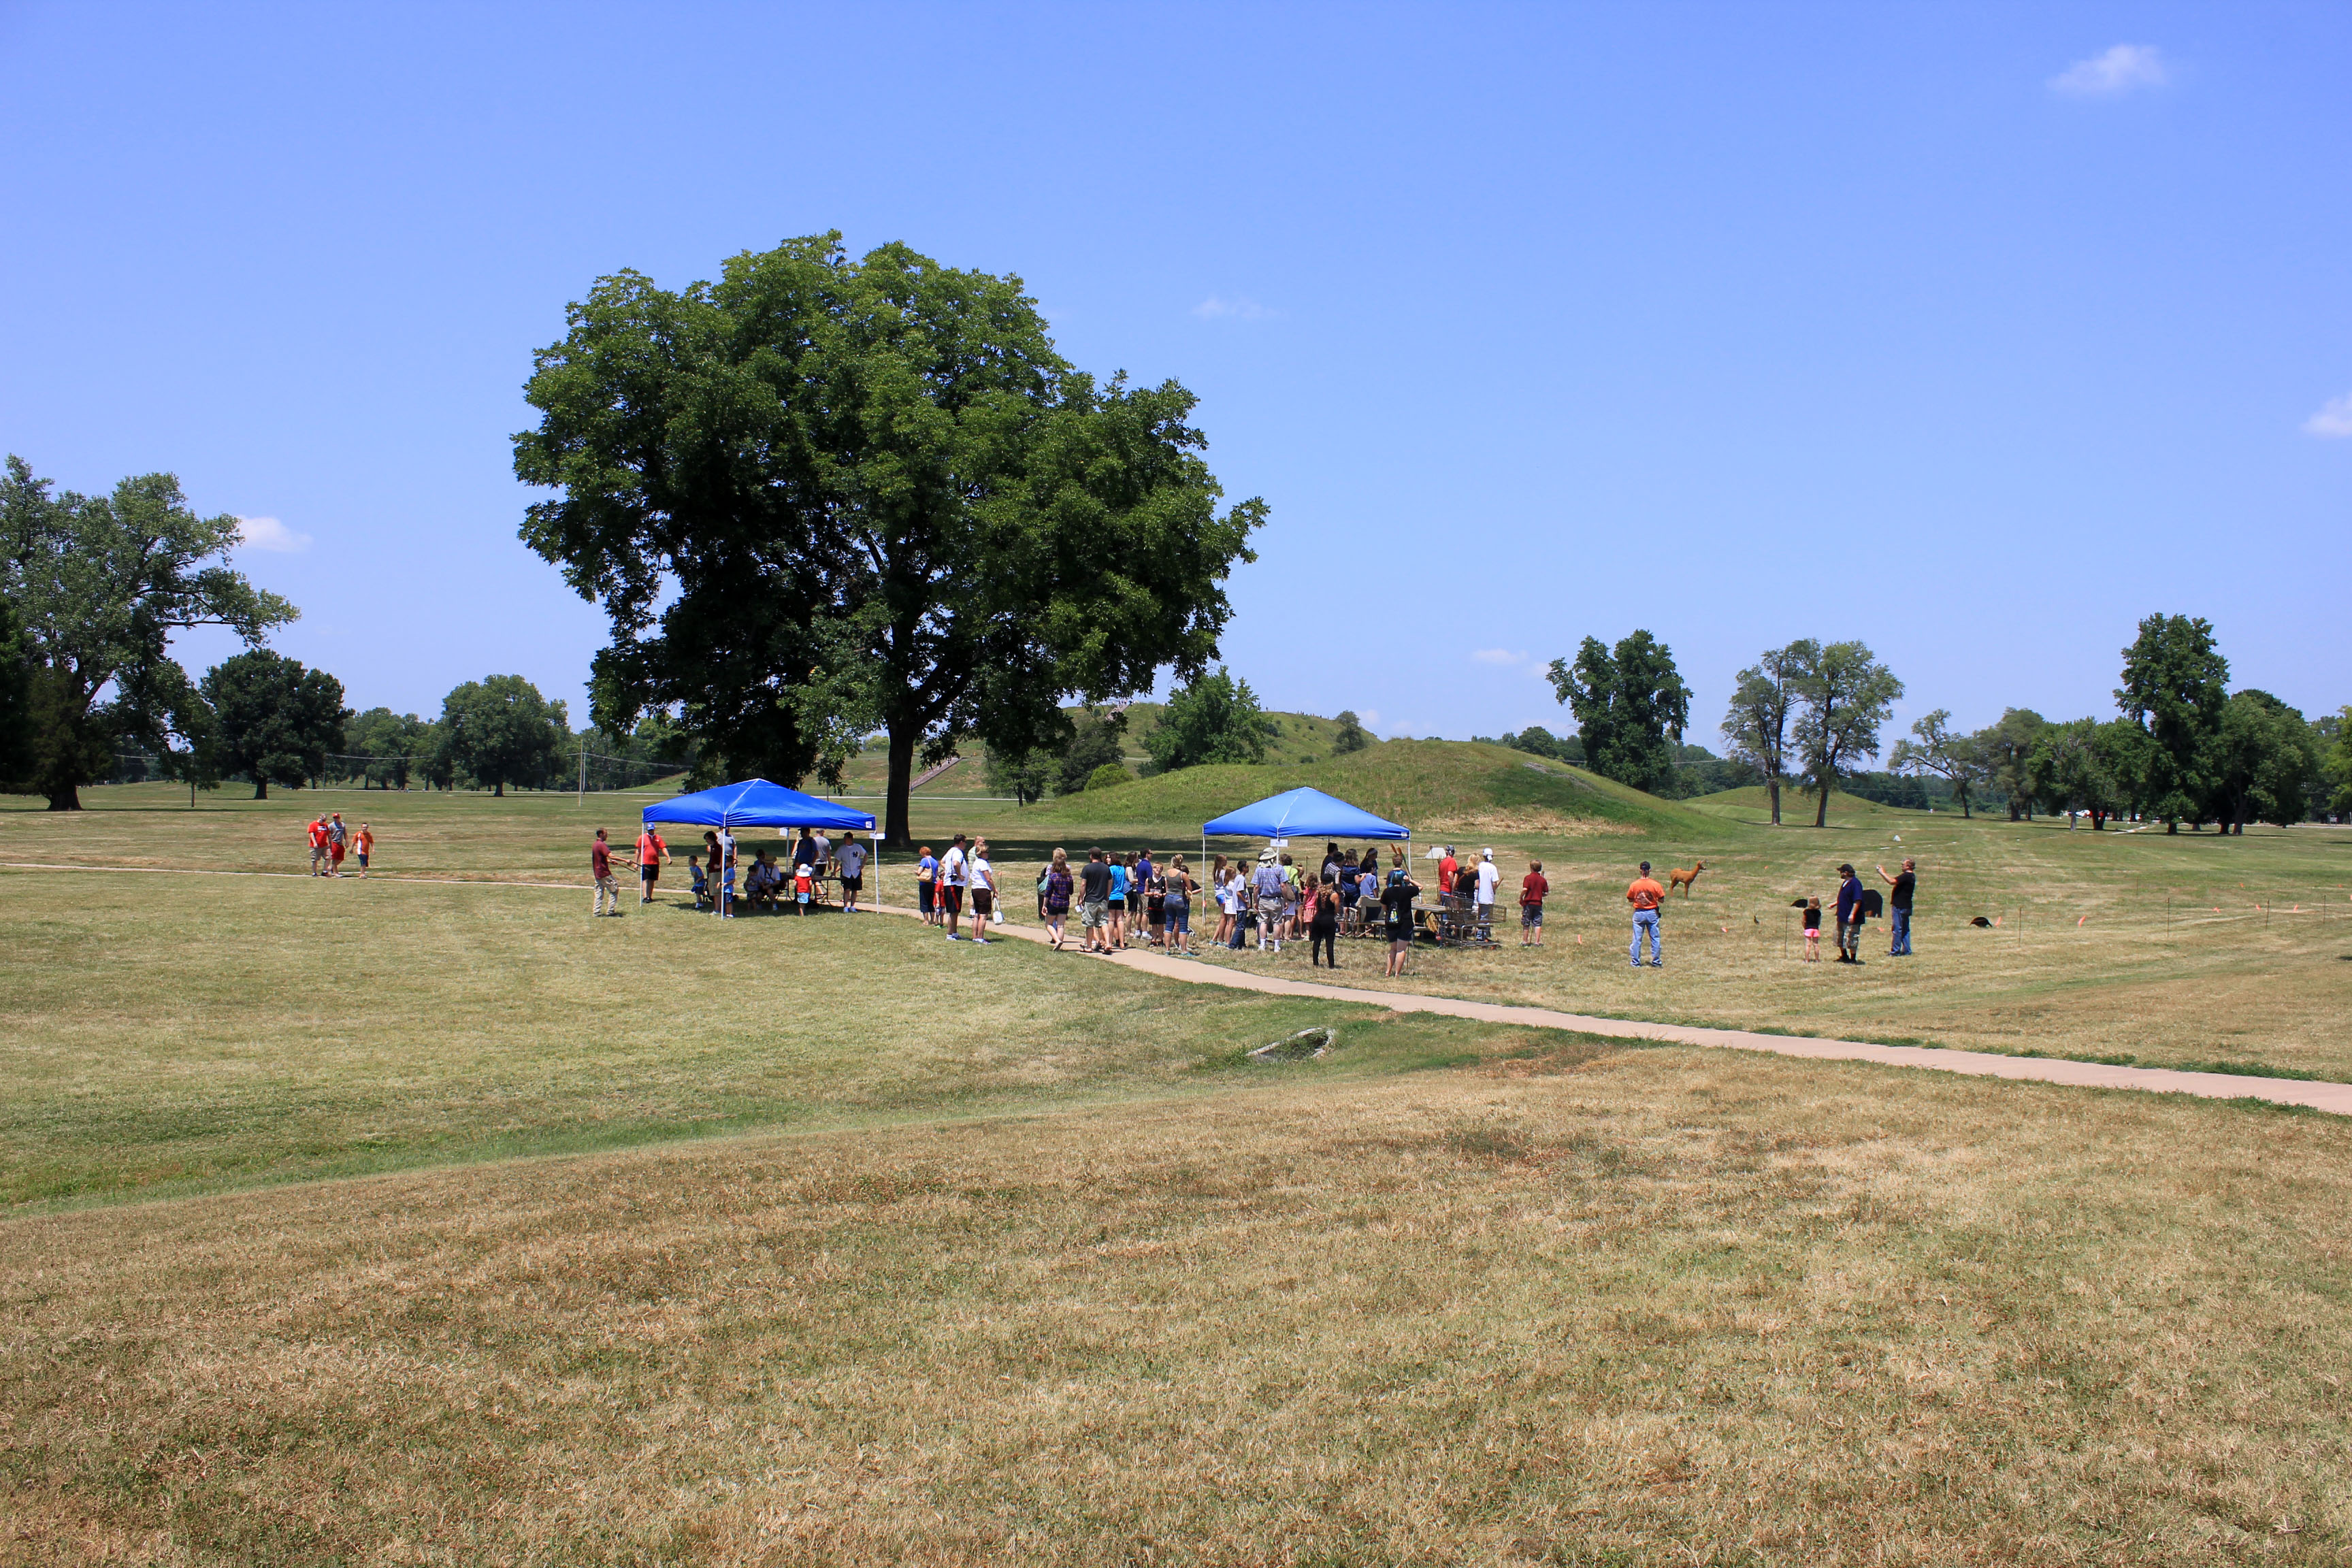 More tents and people at Cahokia Mounds, Illinois image